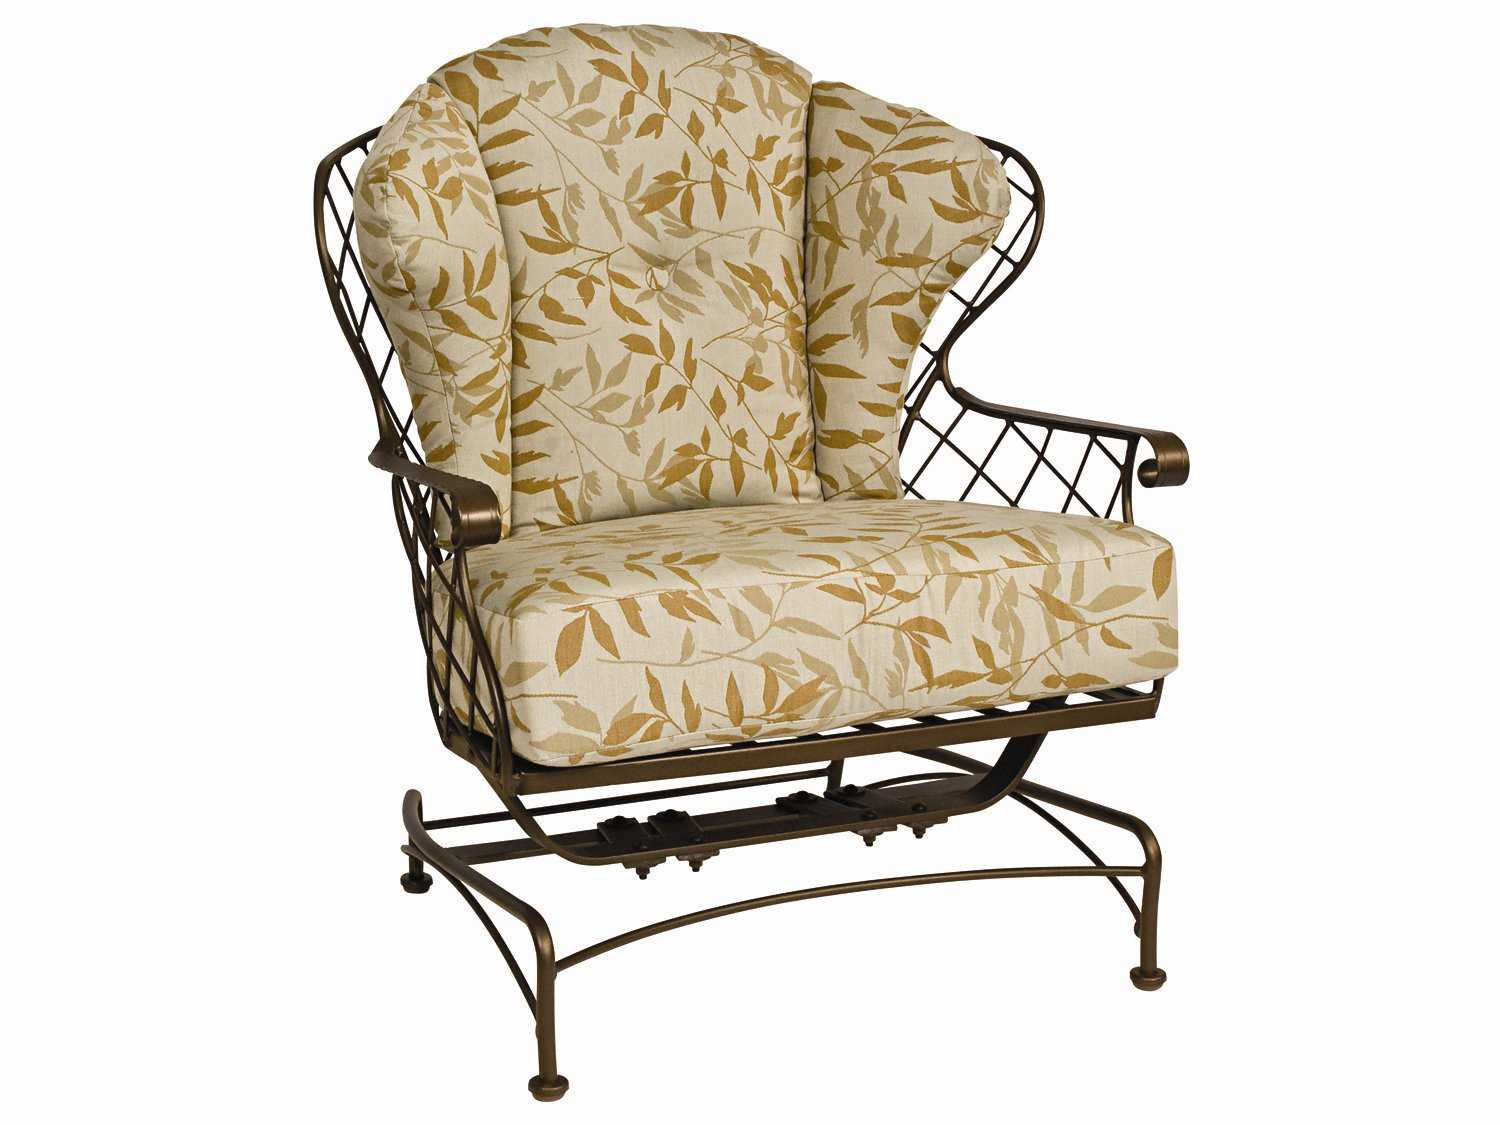 replacement chair covers for outdoor chairs john lewis deck woodard brayden cushion spring lounge